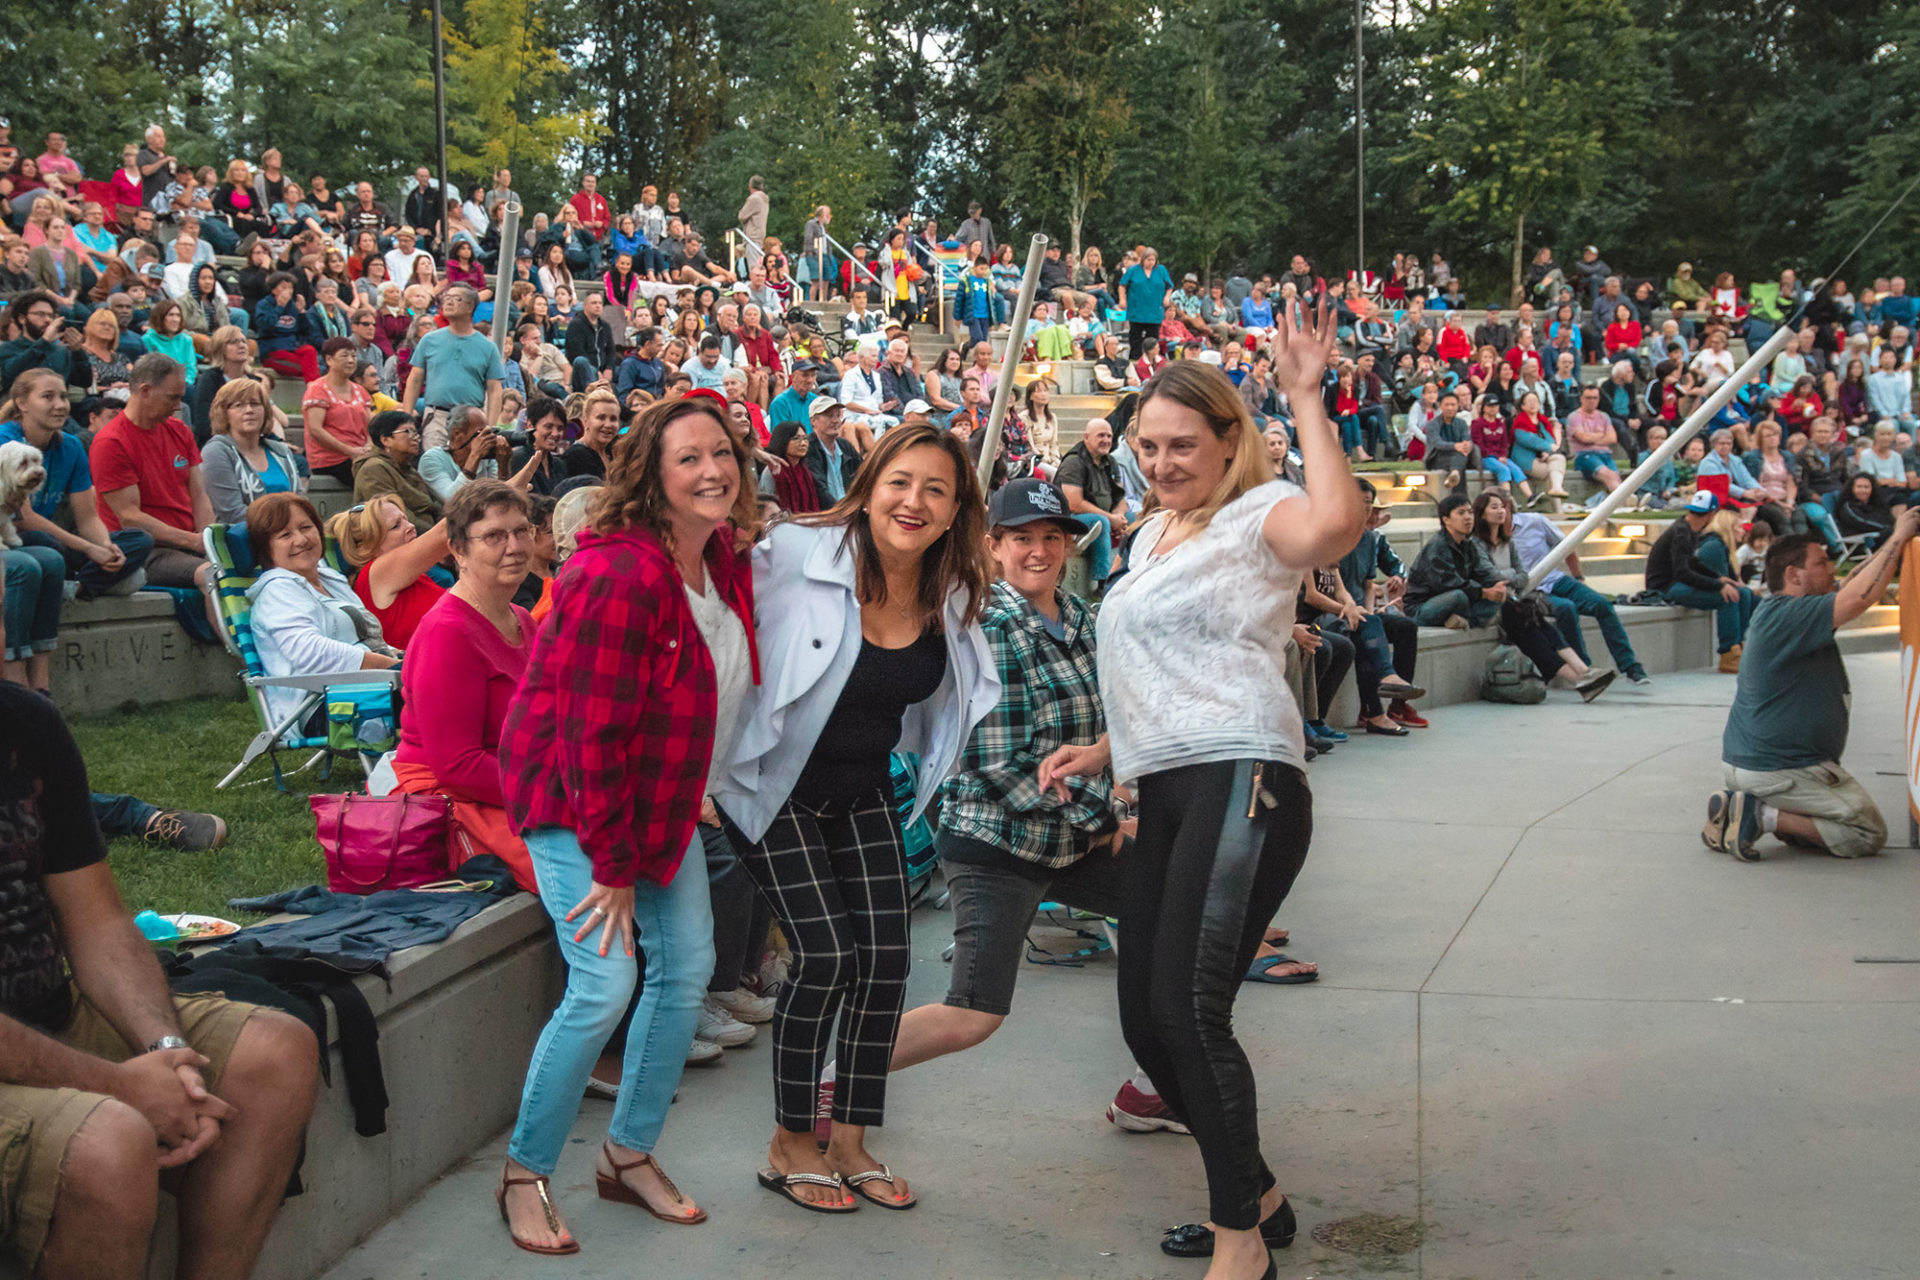 four woman making silly poses at concert